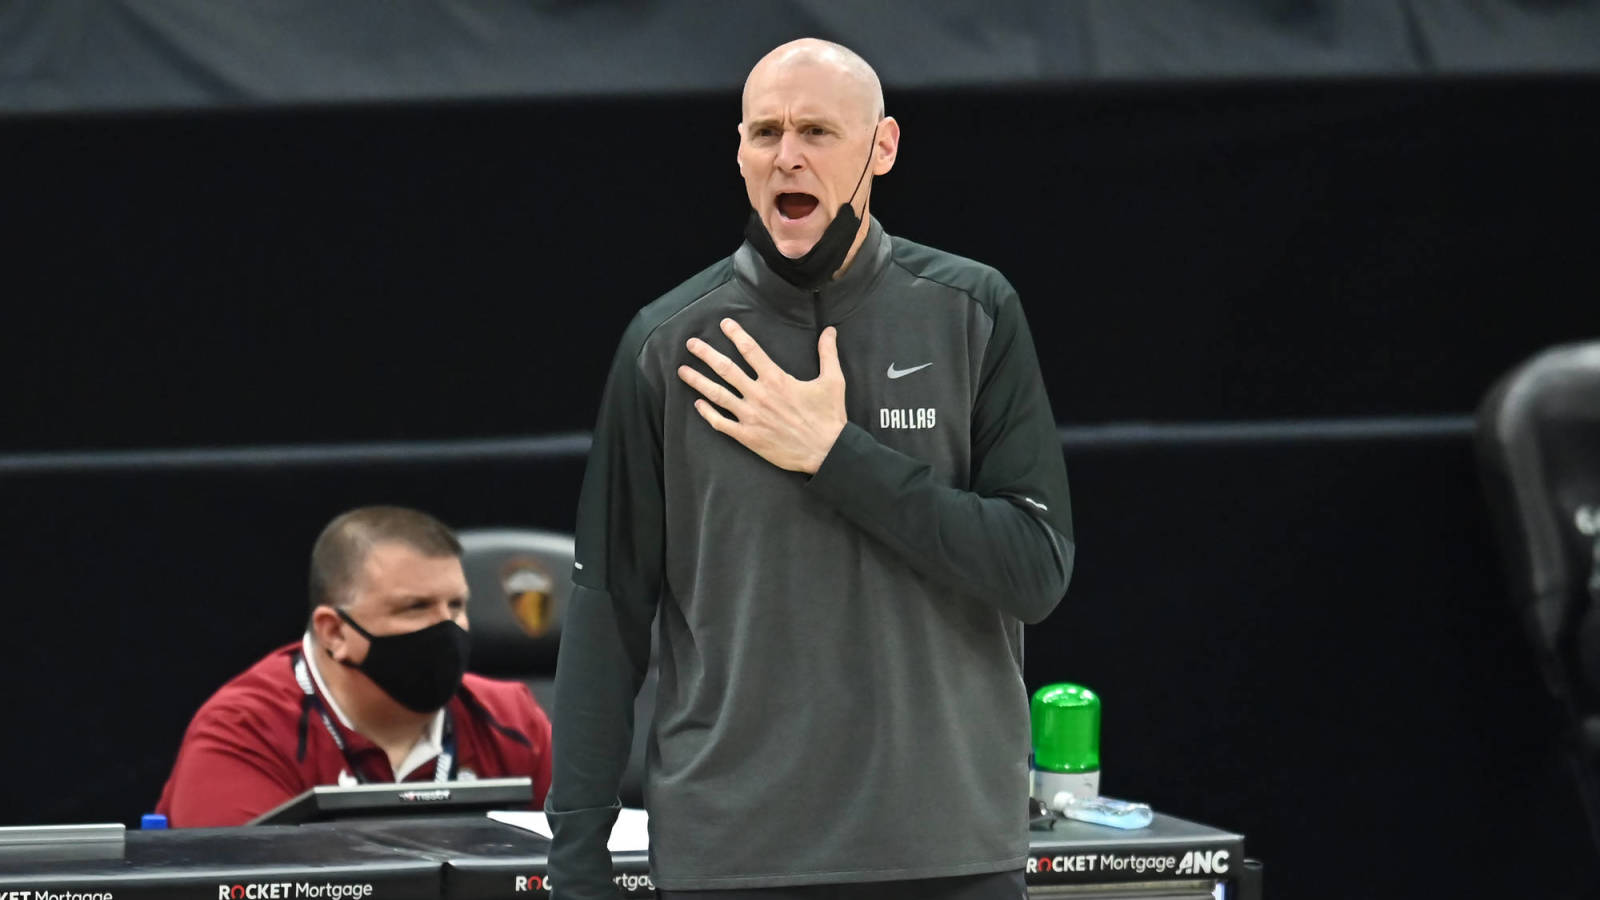 Rick Carlisle rejoins the Pacers for his second stint as coach